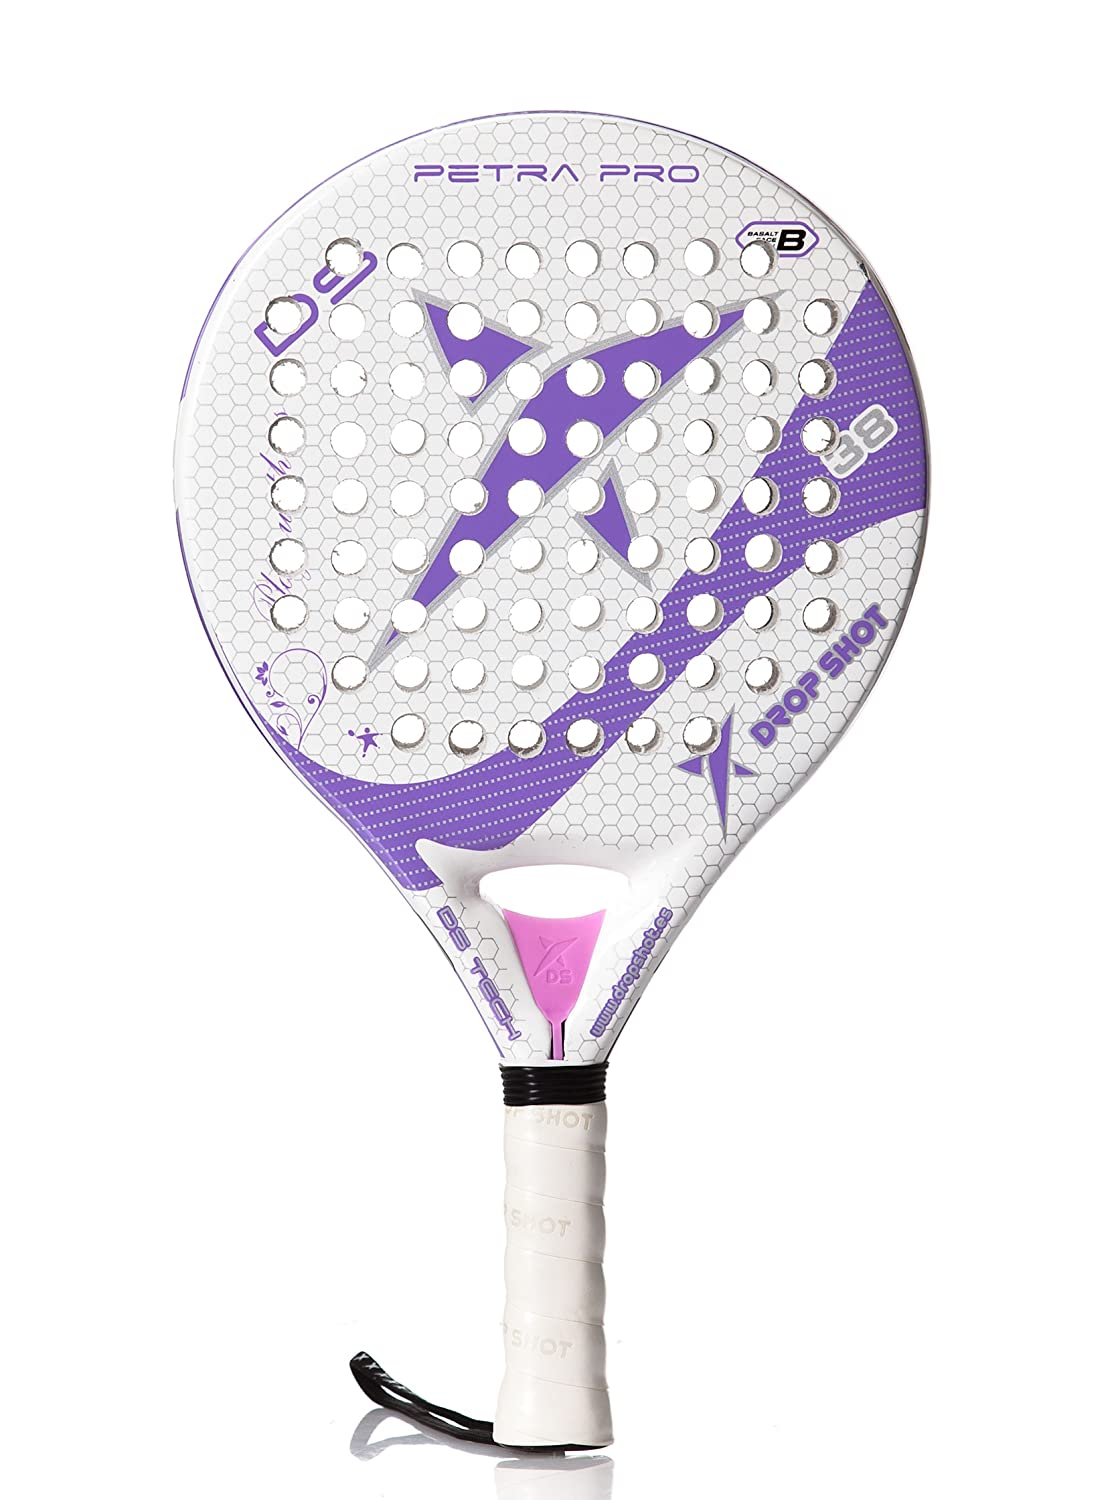 DROP SHOT Pala Petra Pro Blanco/Morado Única: Amazon.es ...